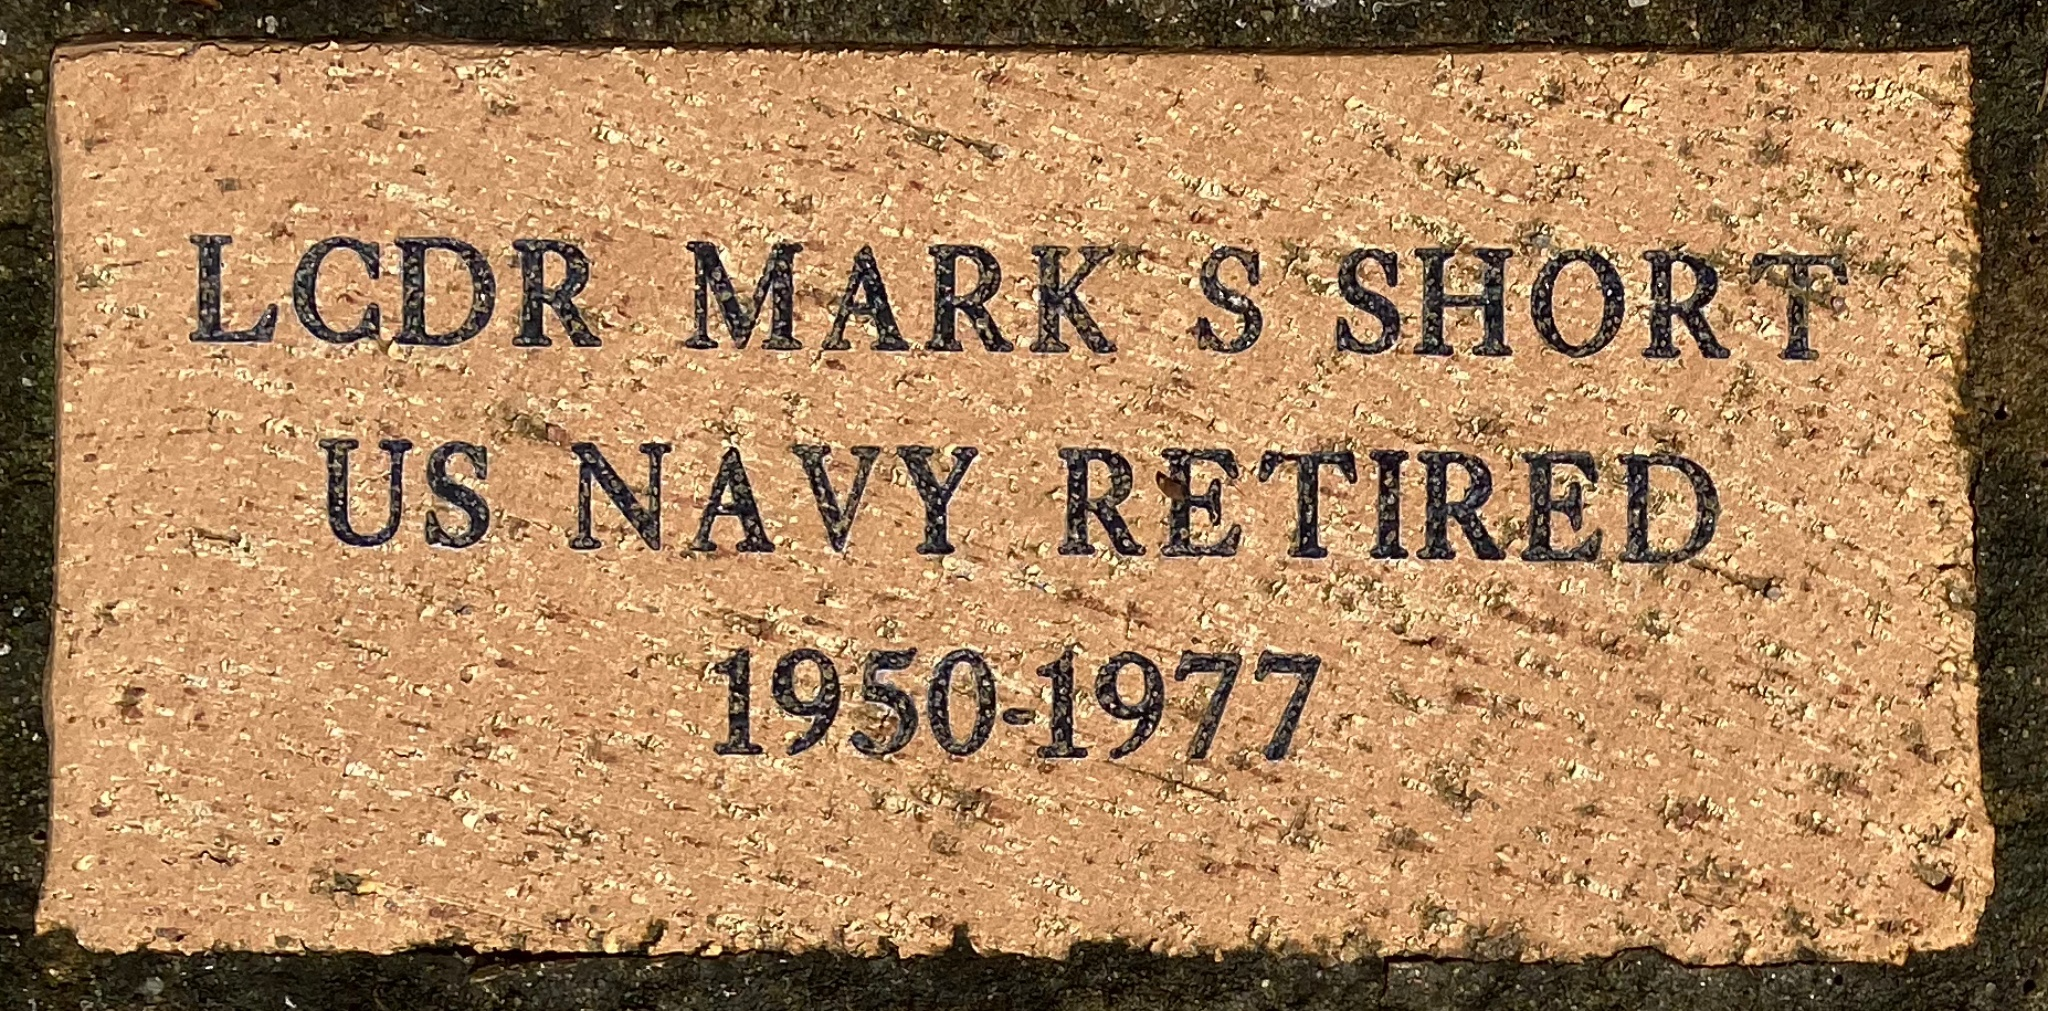 LCDR MARK S SHORT US NAVY RETIRED 1950-1977